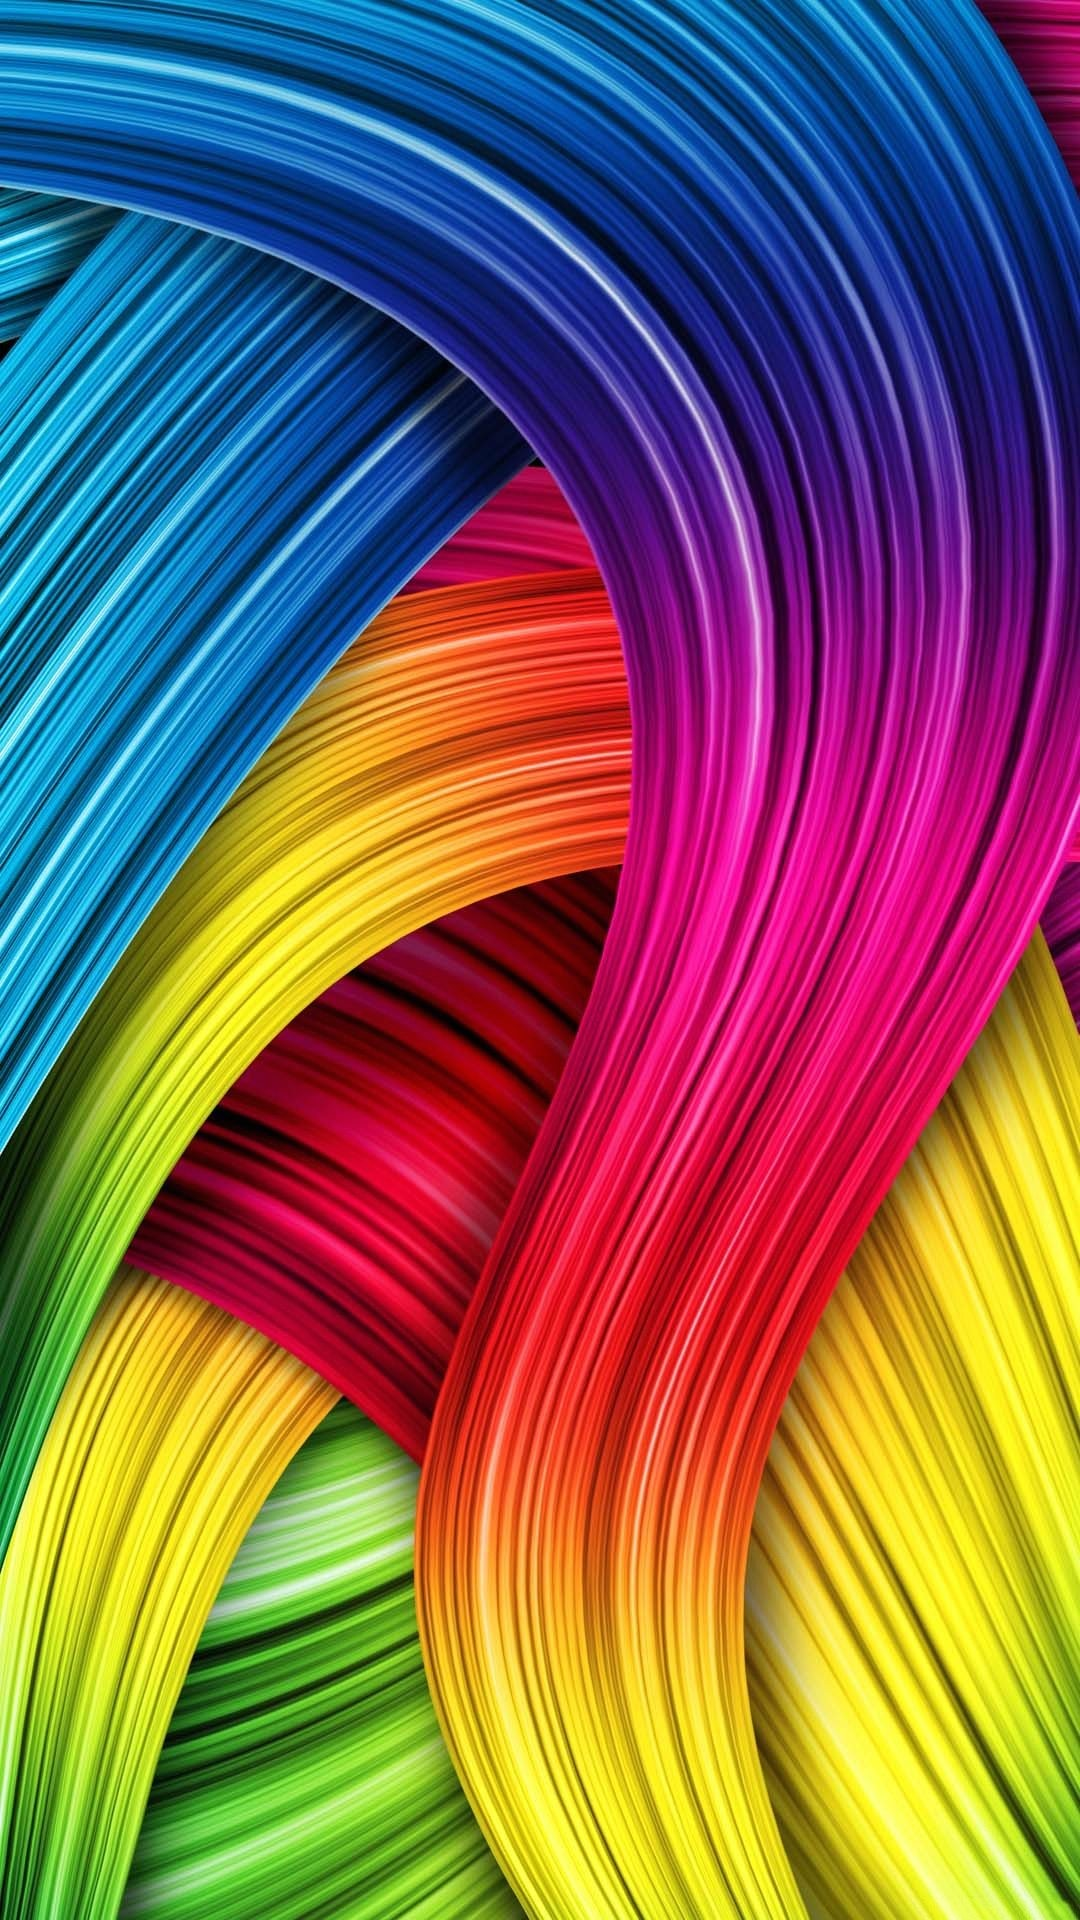 1080x1920 Wallpaper full hd 1080 x 1920 smartphone colorful fiber hairs